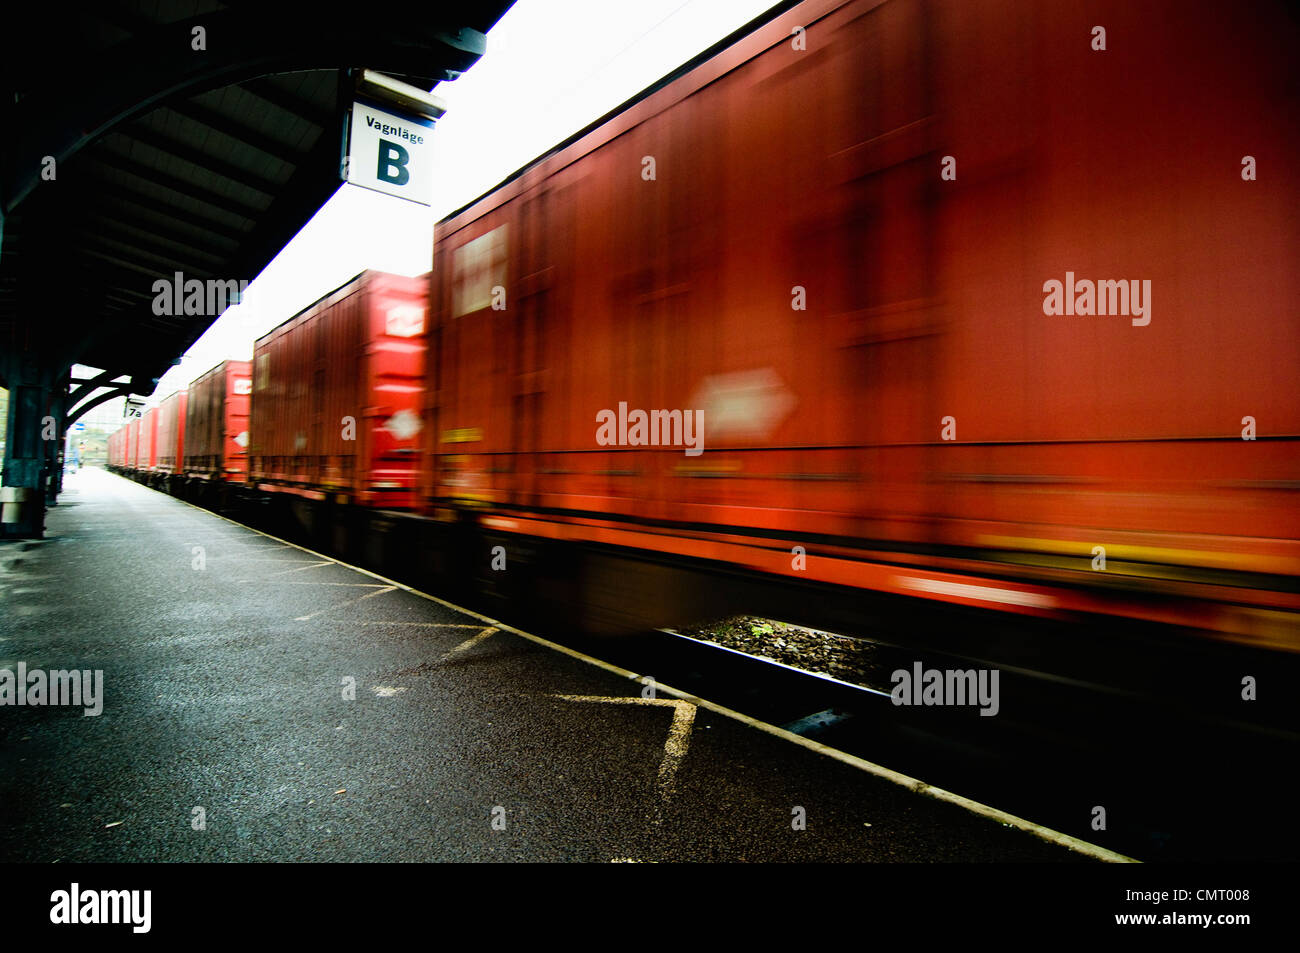 Blurred motion of freight train - Stock Image